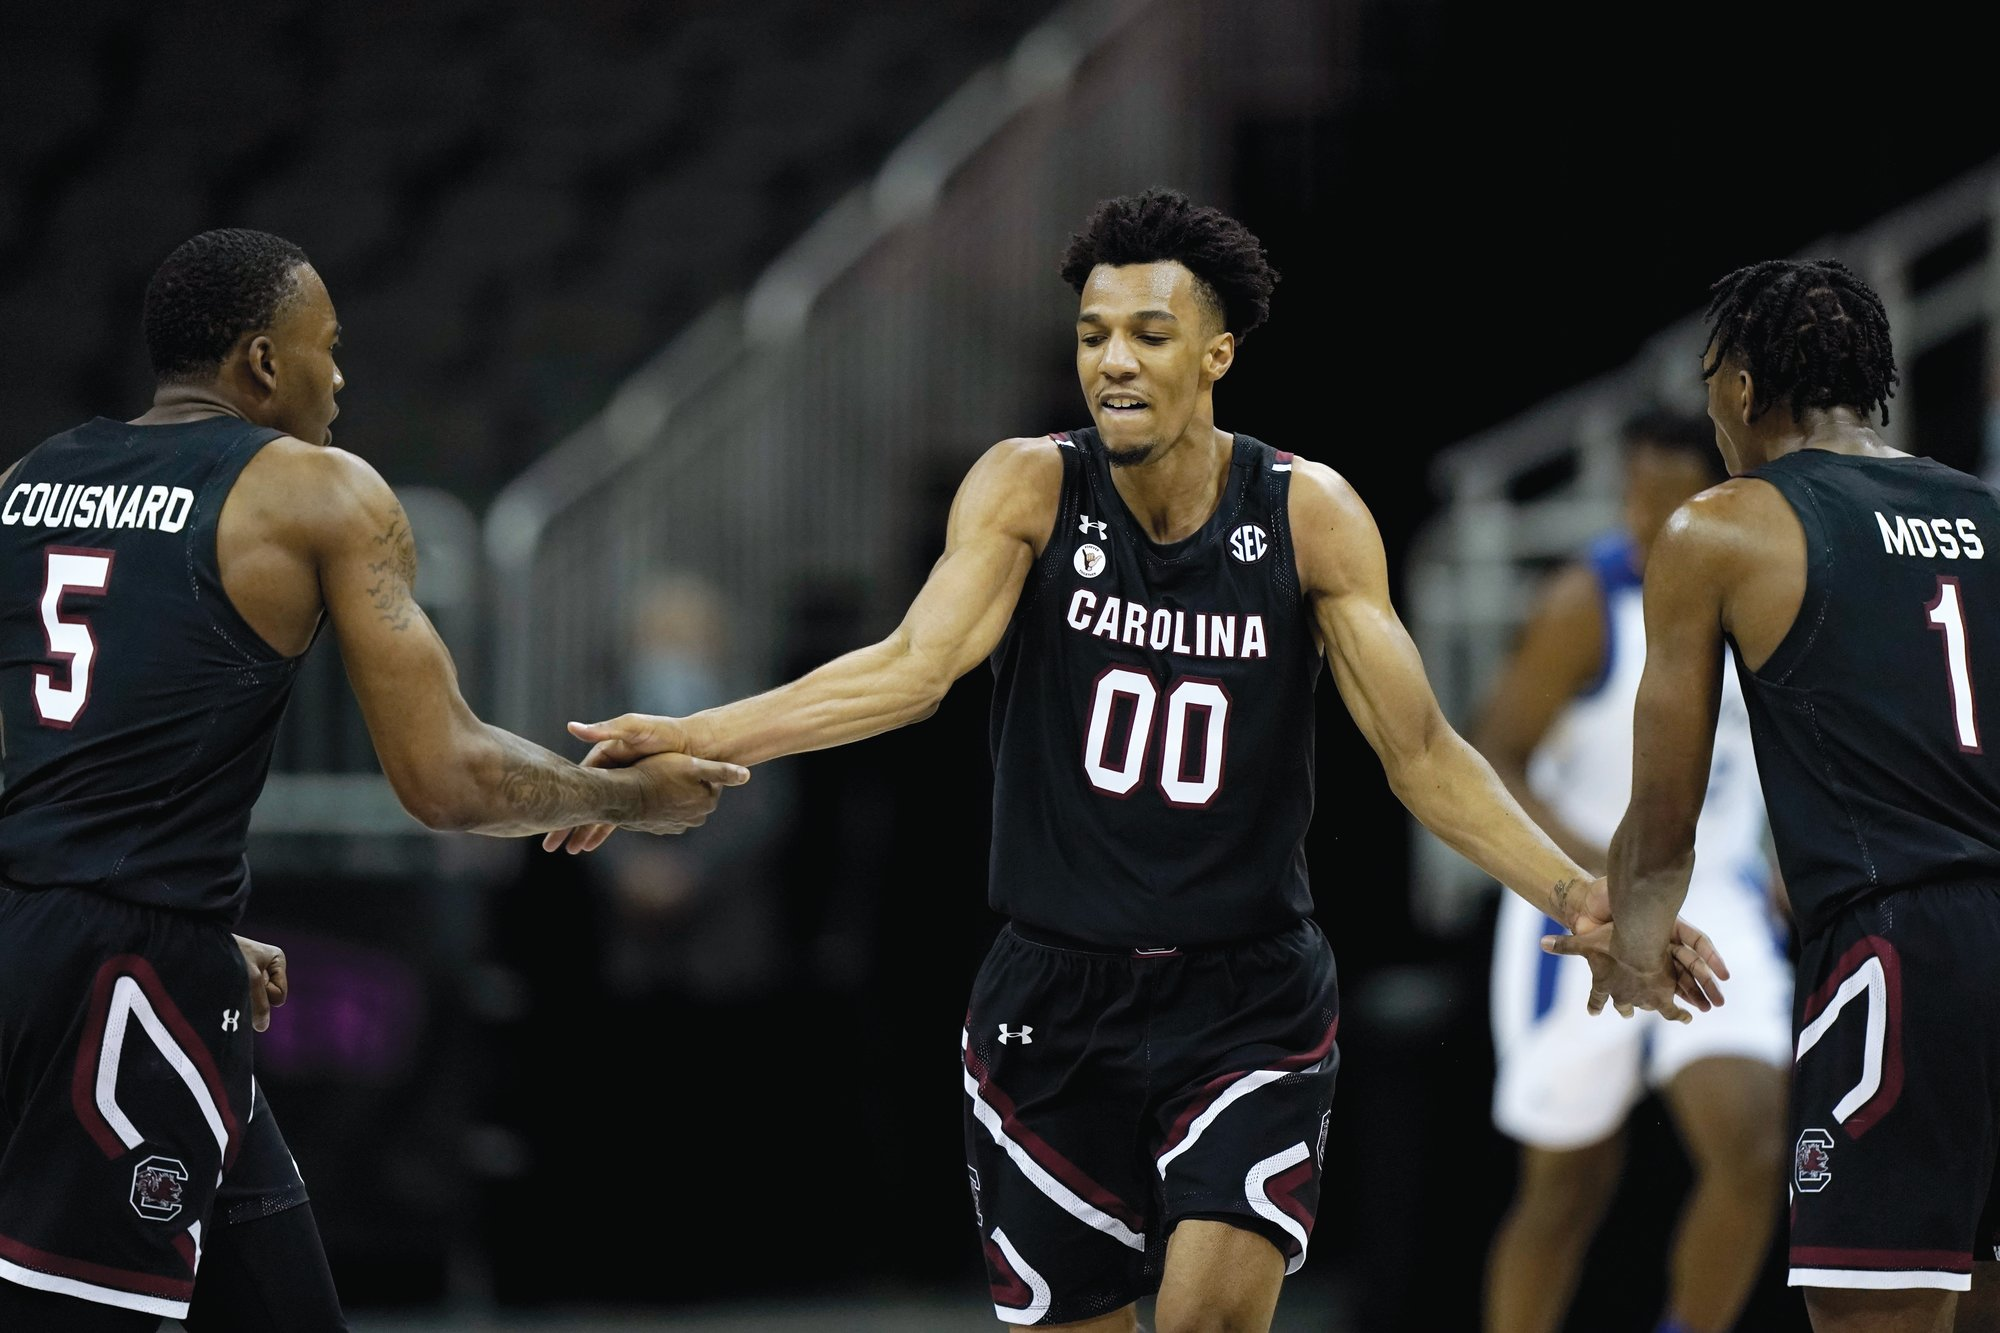 South Carolina's AJ Lawson (00) led the Gamecocks with 30 points in a 78-54 win over Texas A&M on Wednesday.